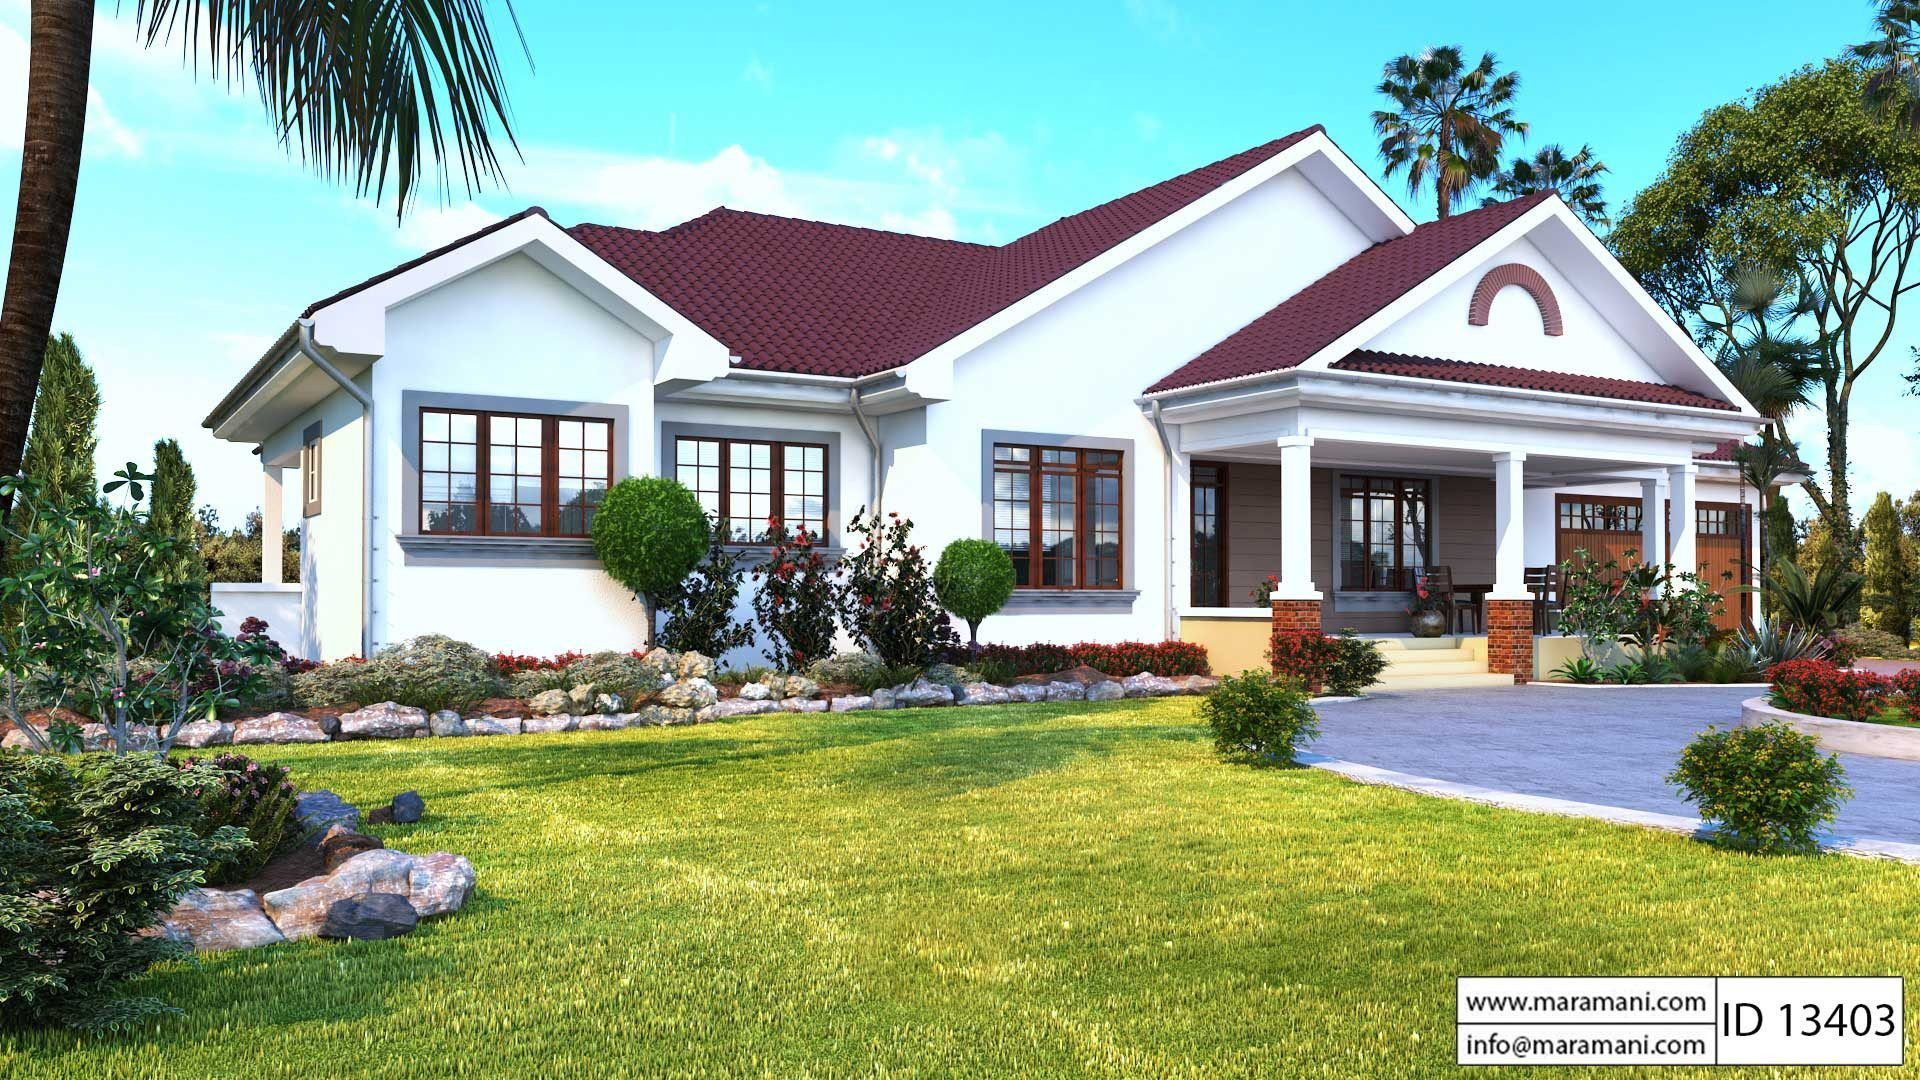 3 Bedroom bungalow with garage ID 13403 House Plans in